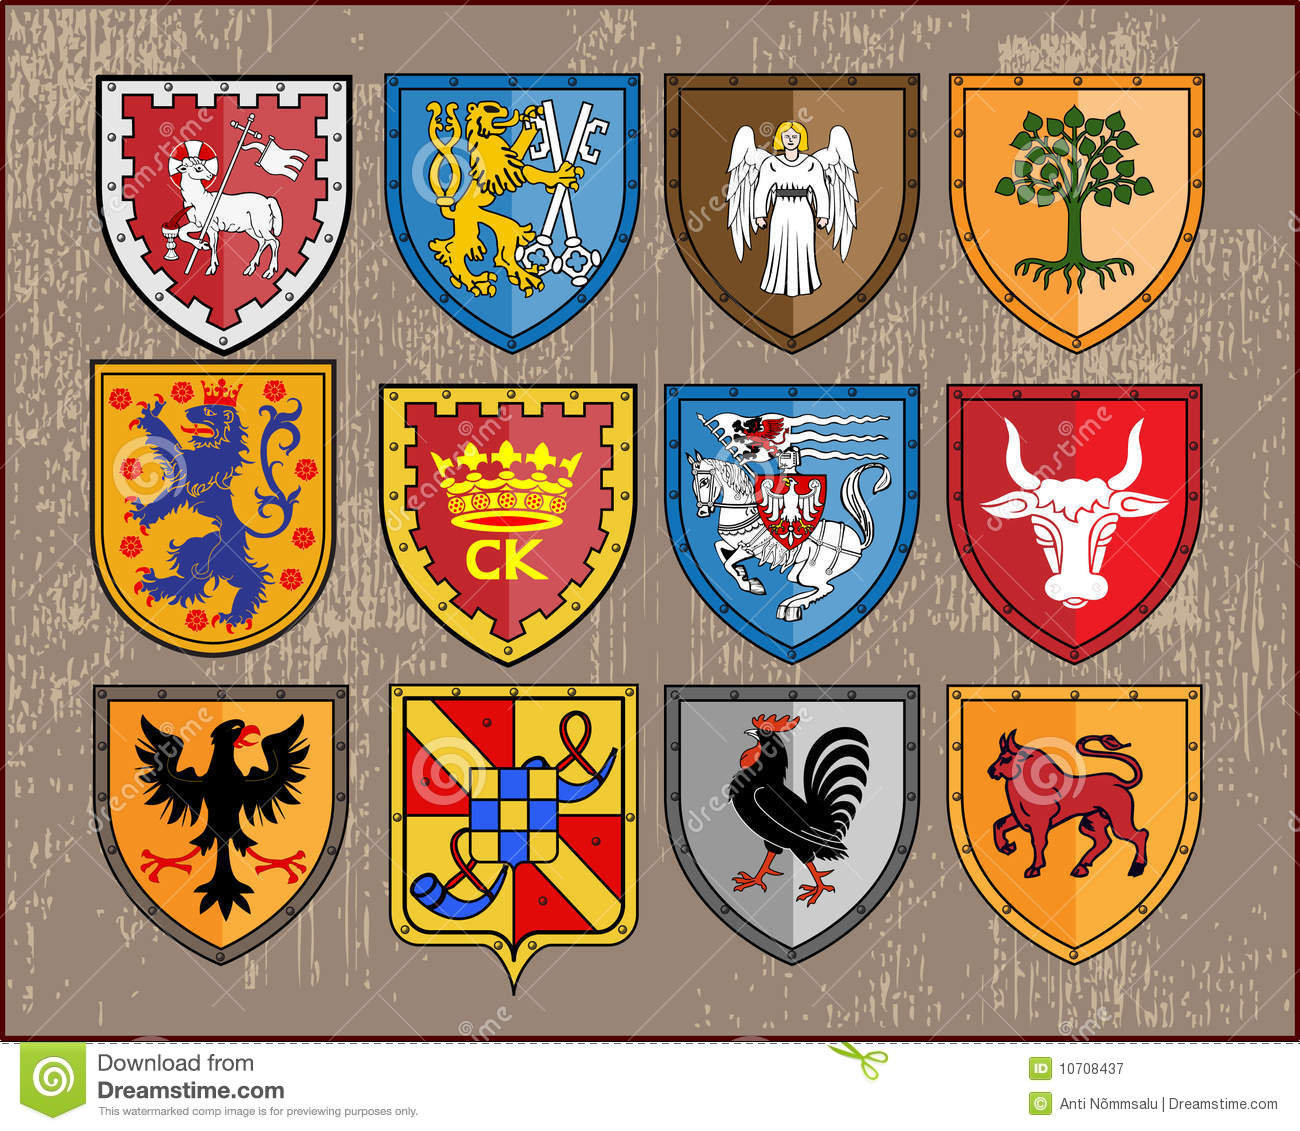 https://forum.ageofmine.com/proxy.php?image=https%3A%2F%2Fthumbs.dreamstime.com%2Fz%2Fheraldic-elements-shields-2-10708437.jpg&hash=d68b327593b0455eec096a0e05f82d32